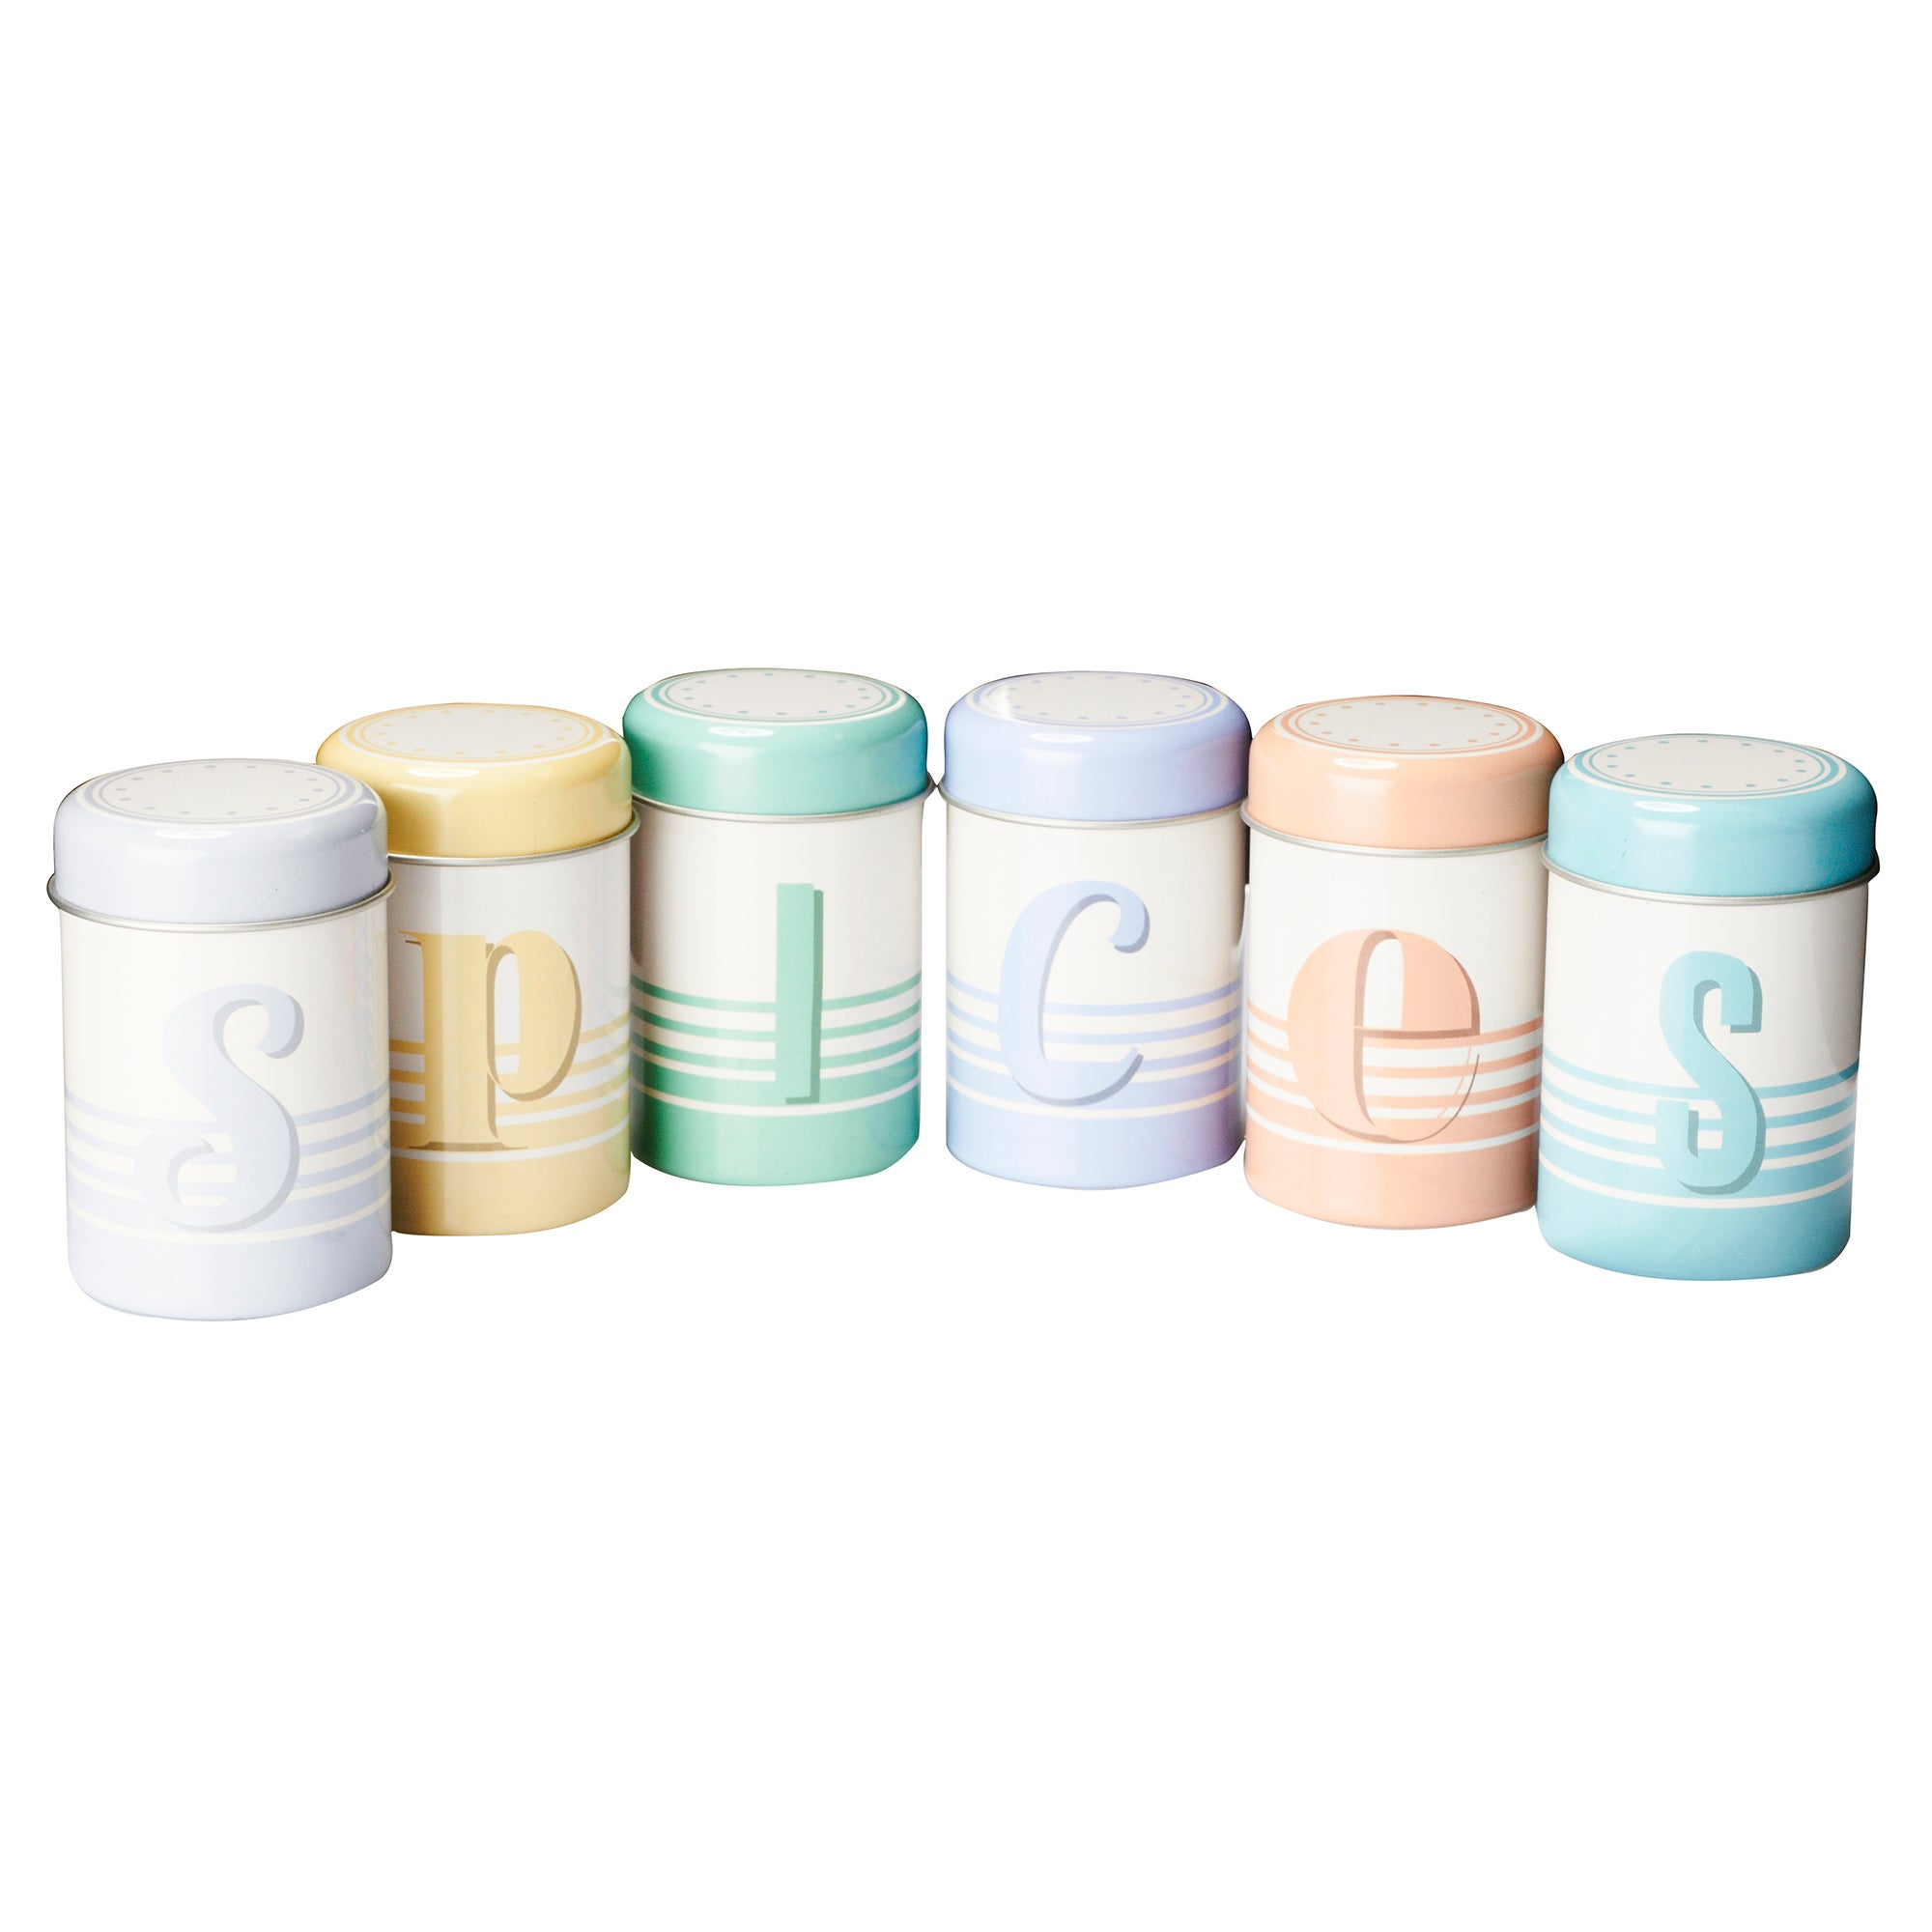 Jamie Oliver Set of 6 Spice Tins